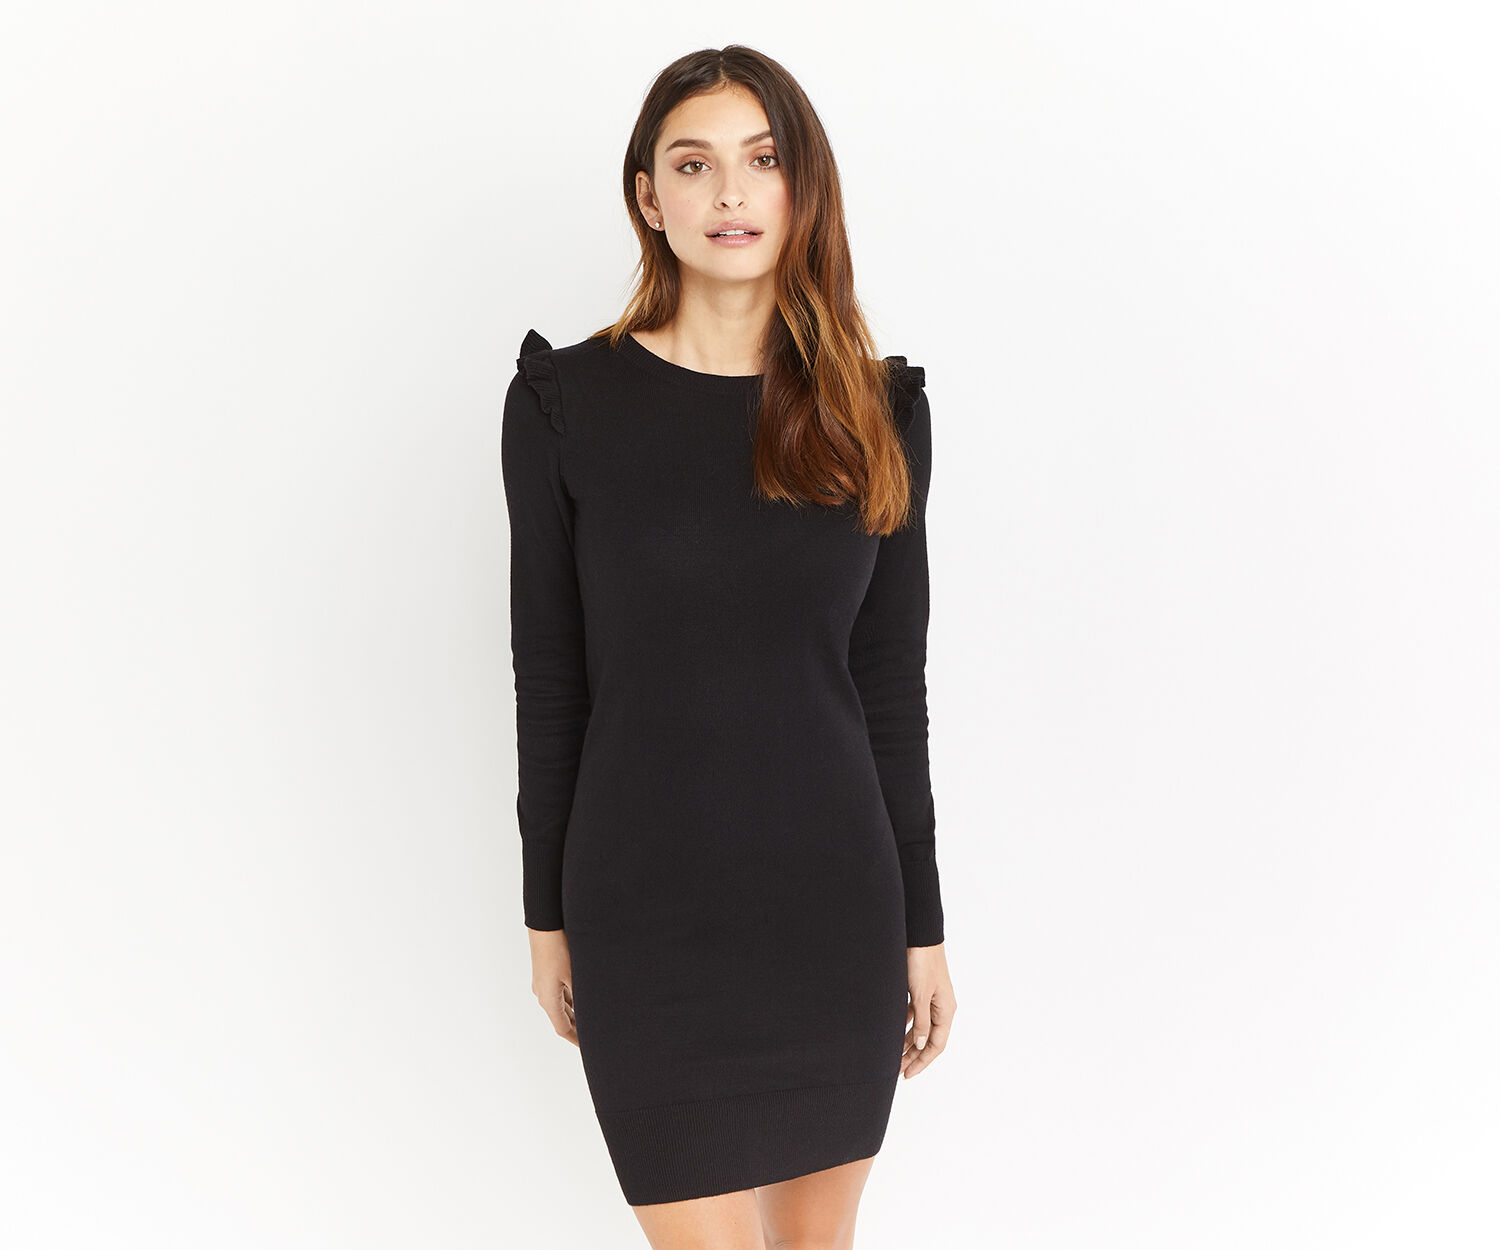 Oasis, CUTE FRILL KNIT DRESS Black 1